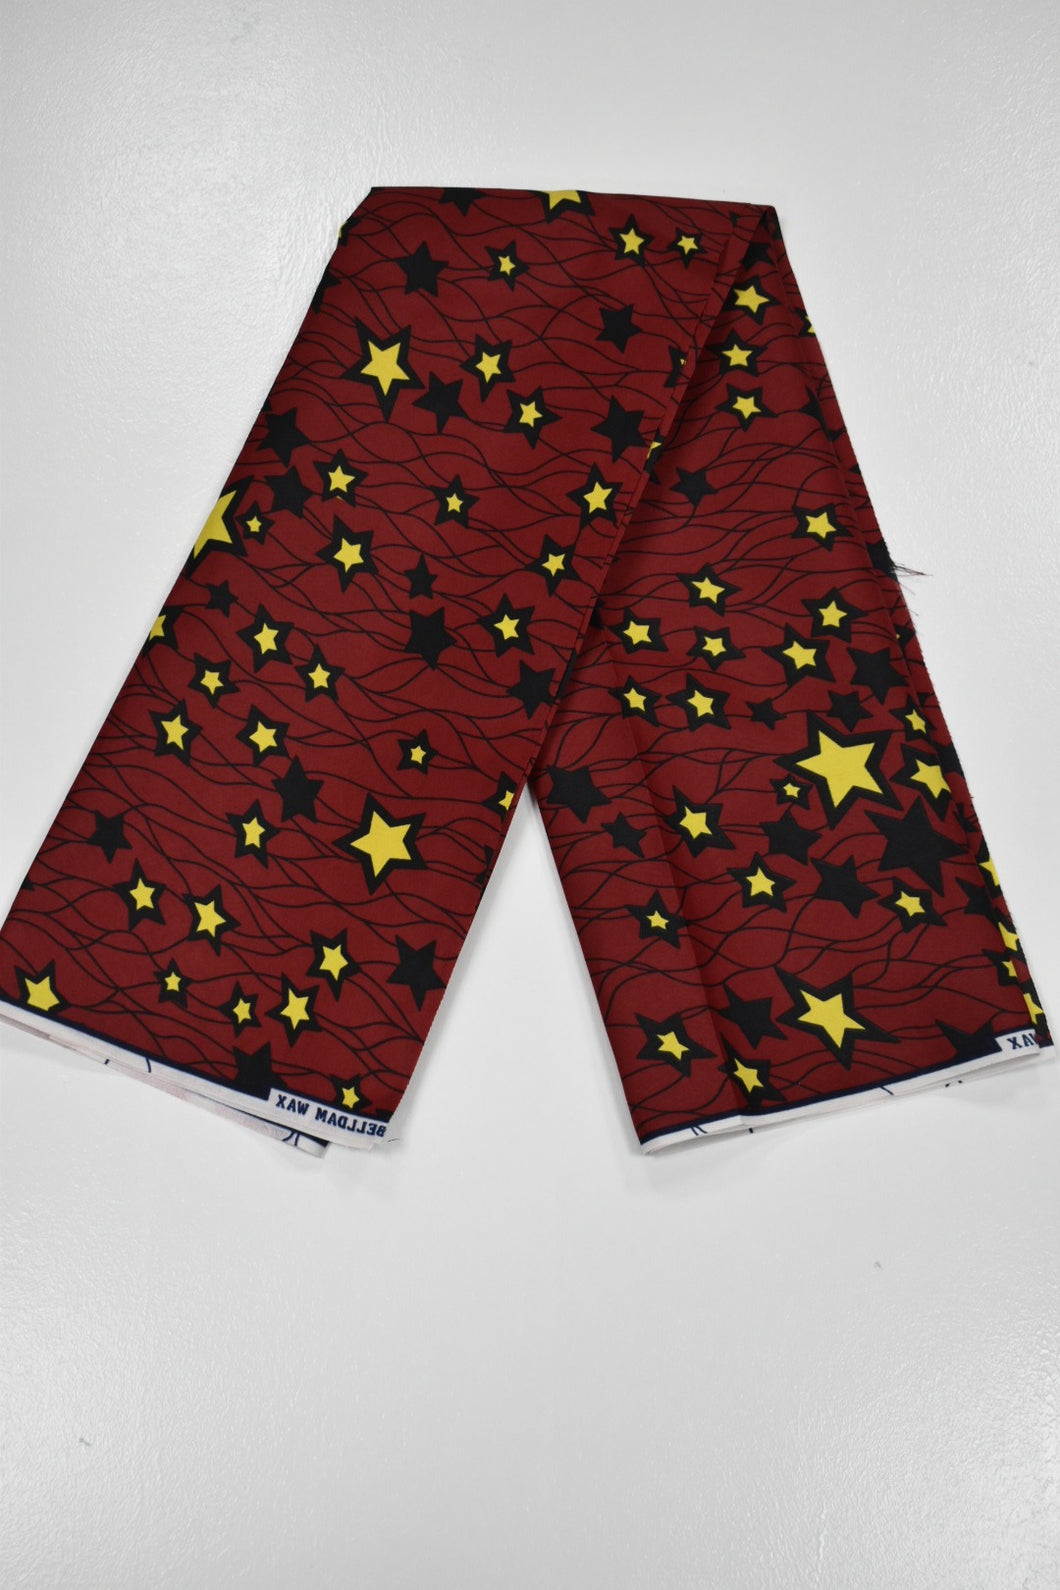 Wine and Yellow Stars Ankara Print - 1 Yard